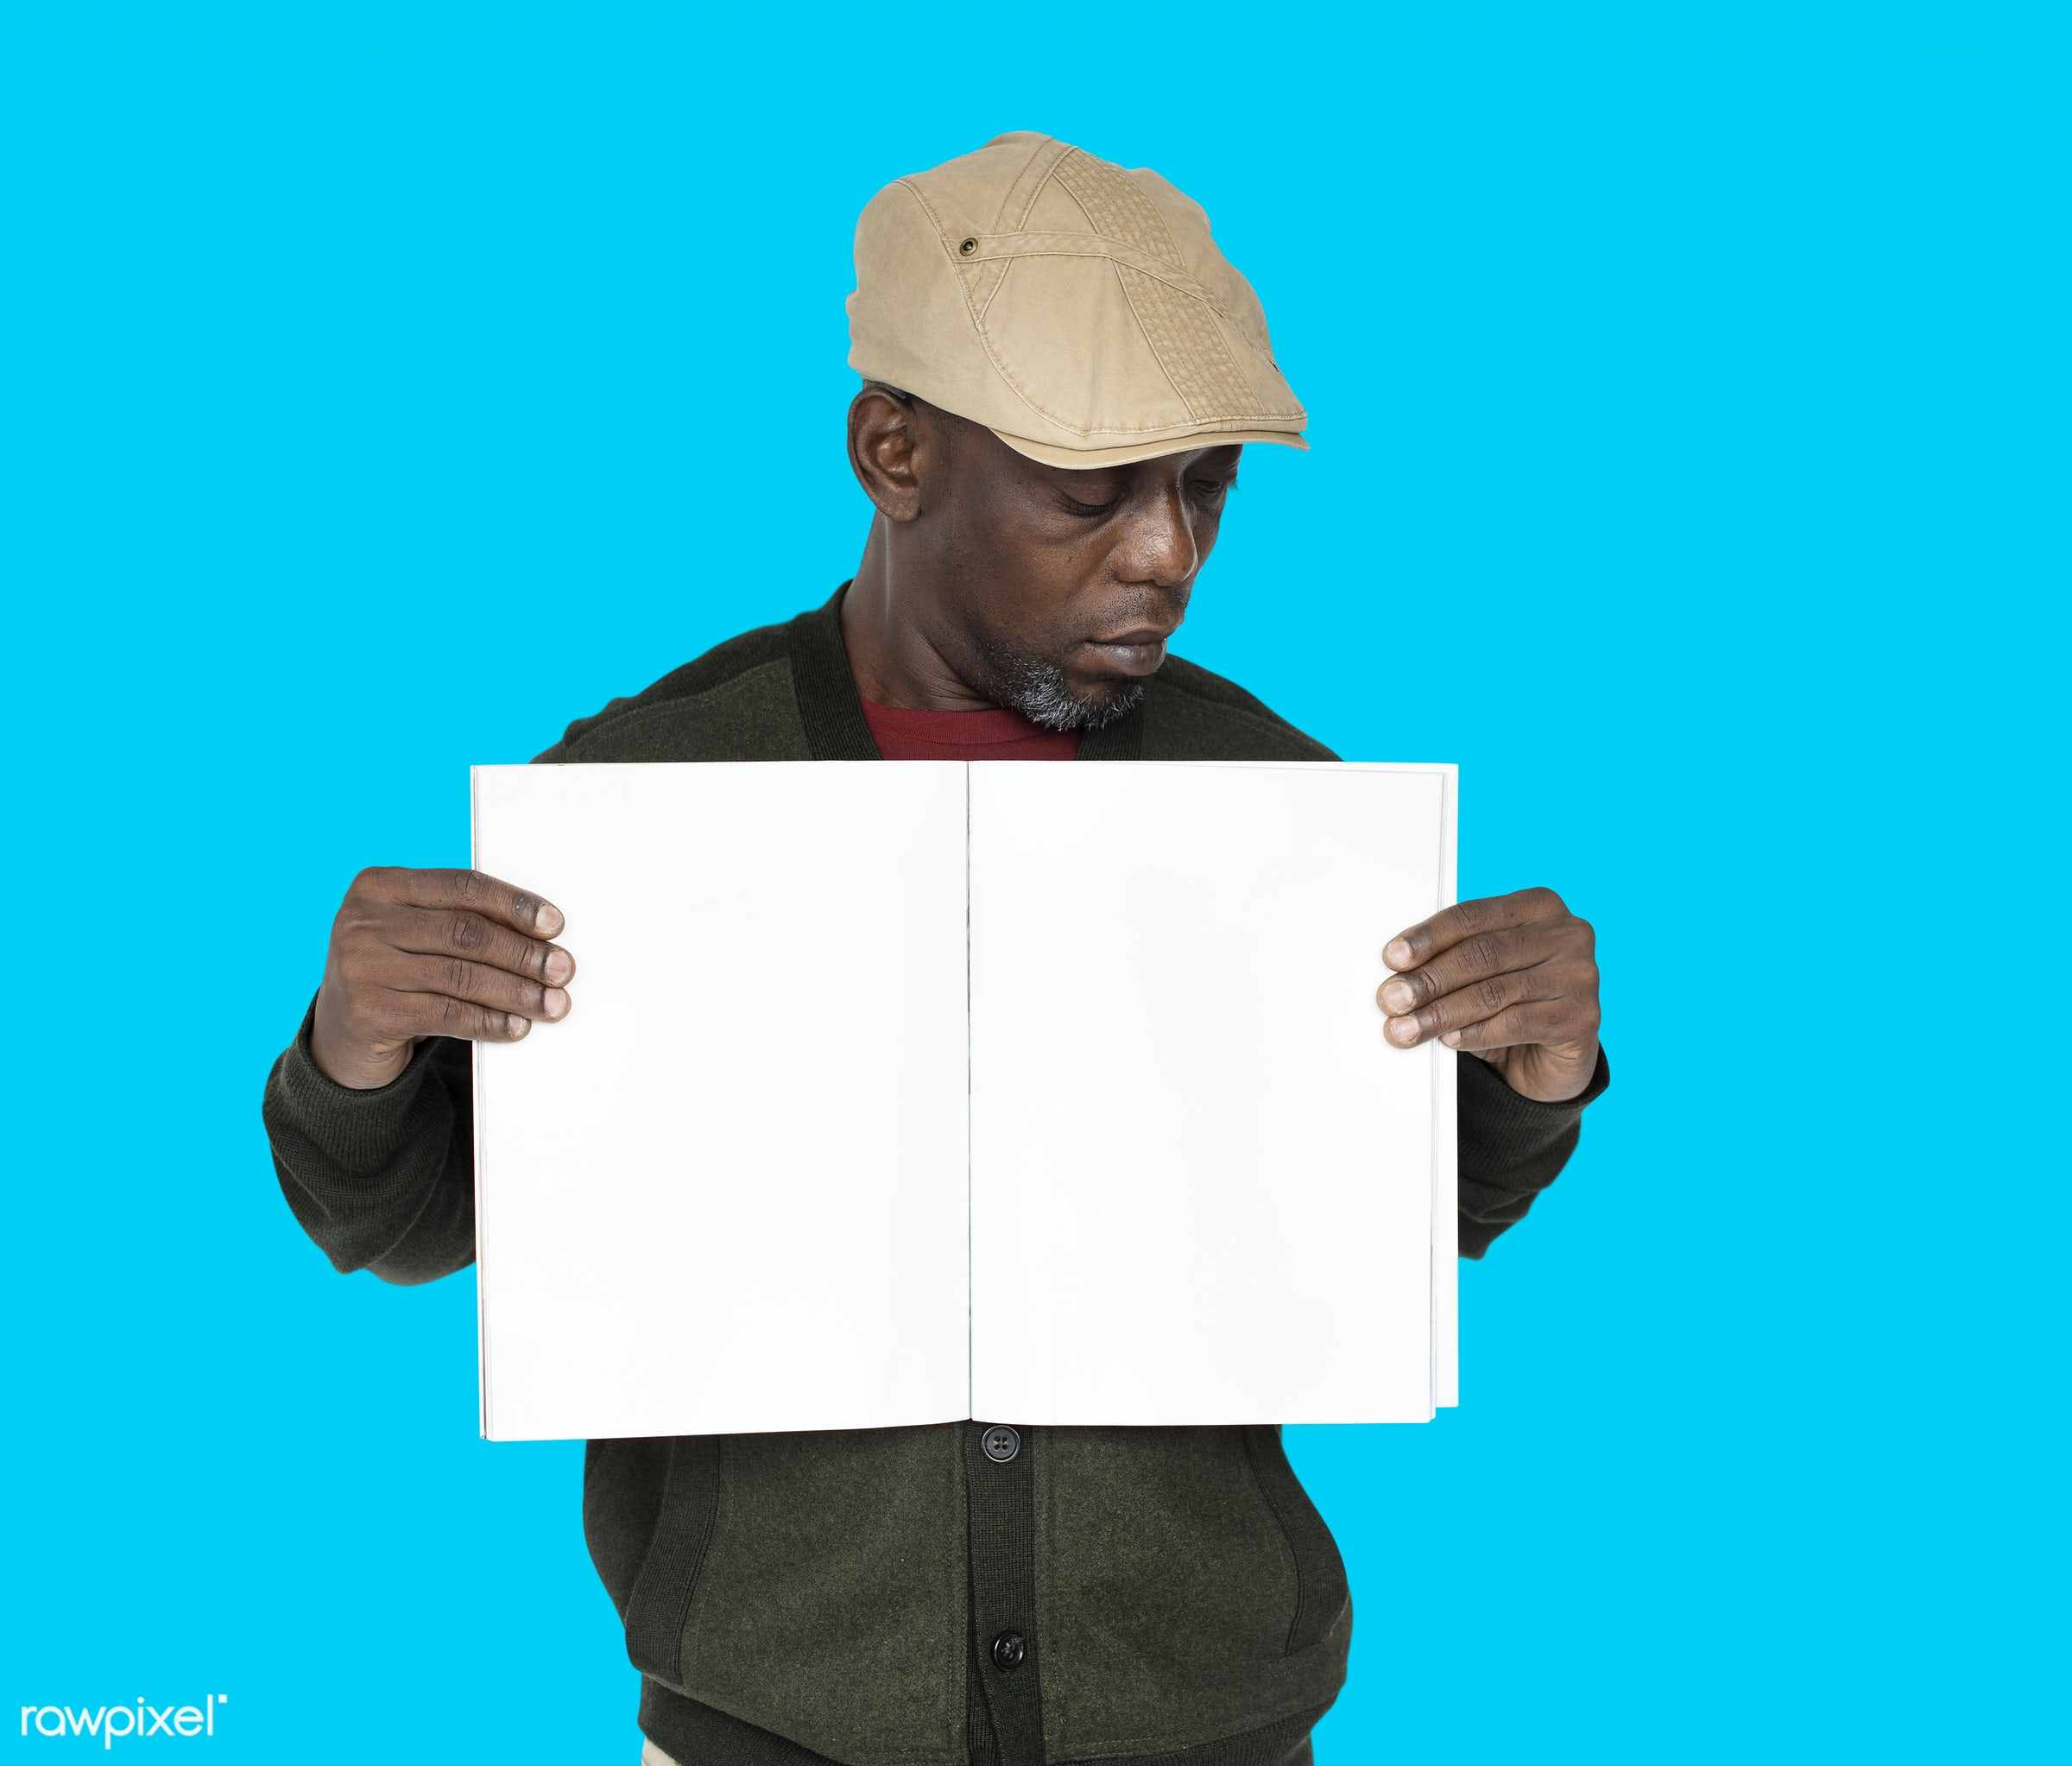 studio, expression, person, model, copyspace, holding, paper, advertising, people, looking, style, casual, empty, showing,...